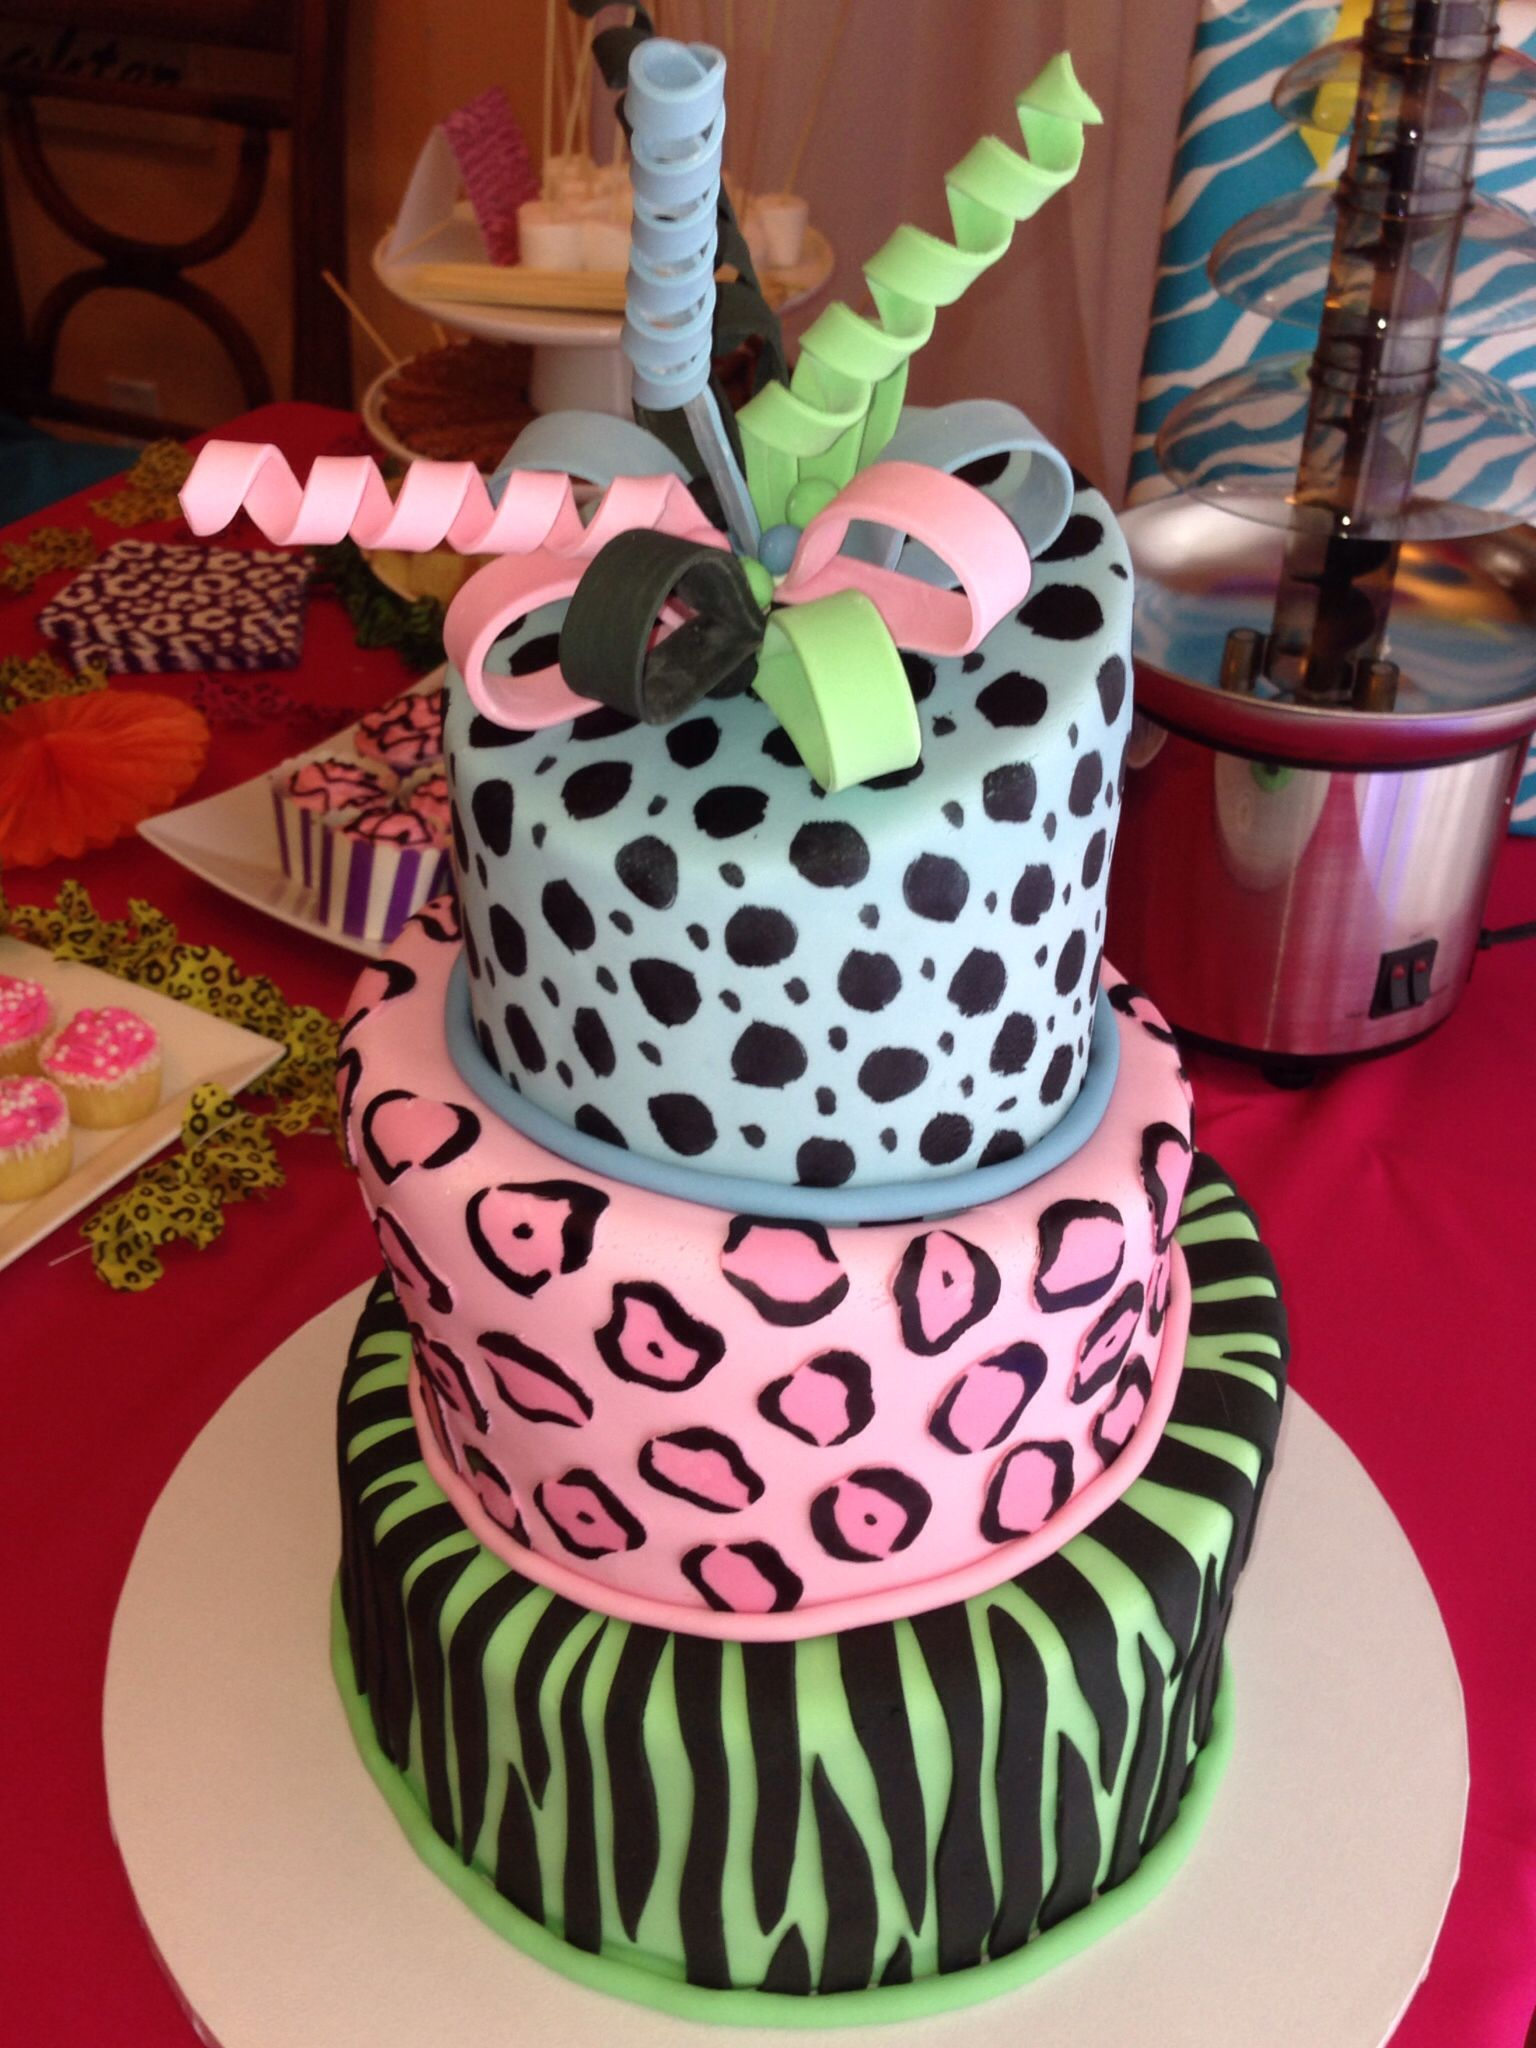 Awe Inspiring Animal Print Cake For A 9 Year Old Girl With Images 10Th Personalised Birthday Cards Beptaeletsinfo